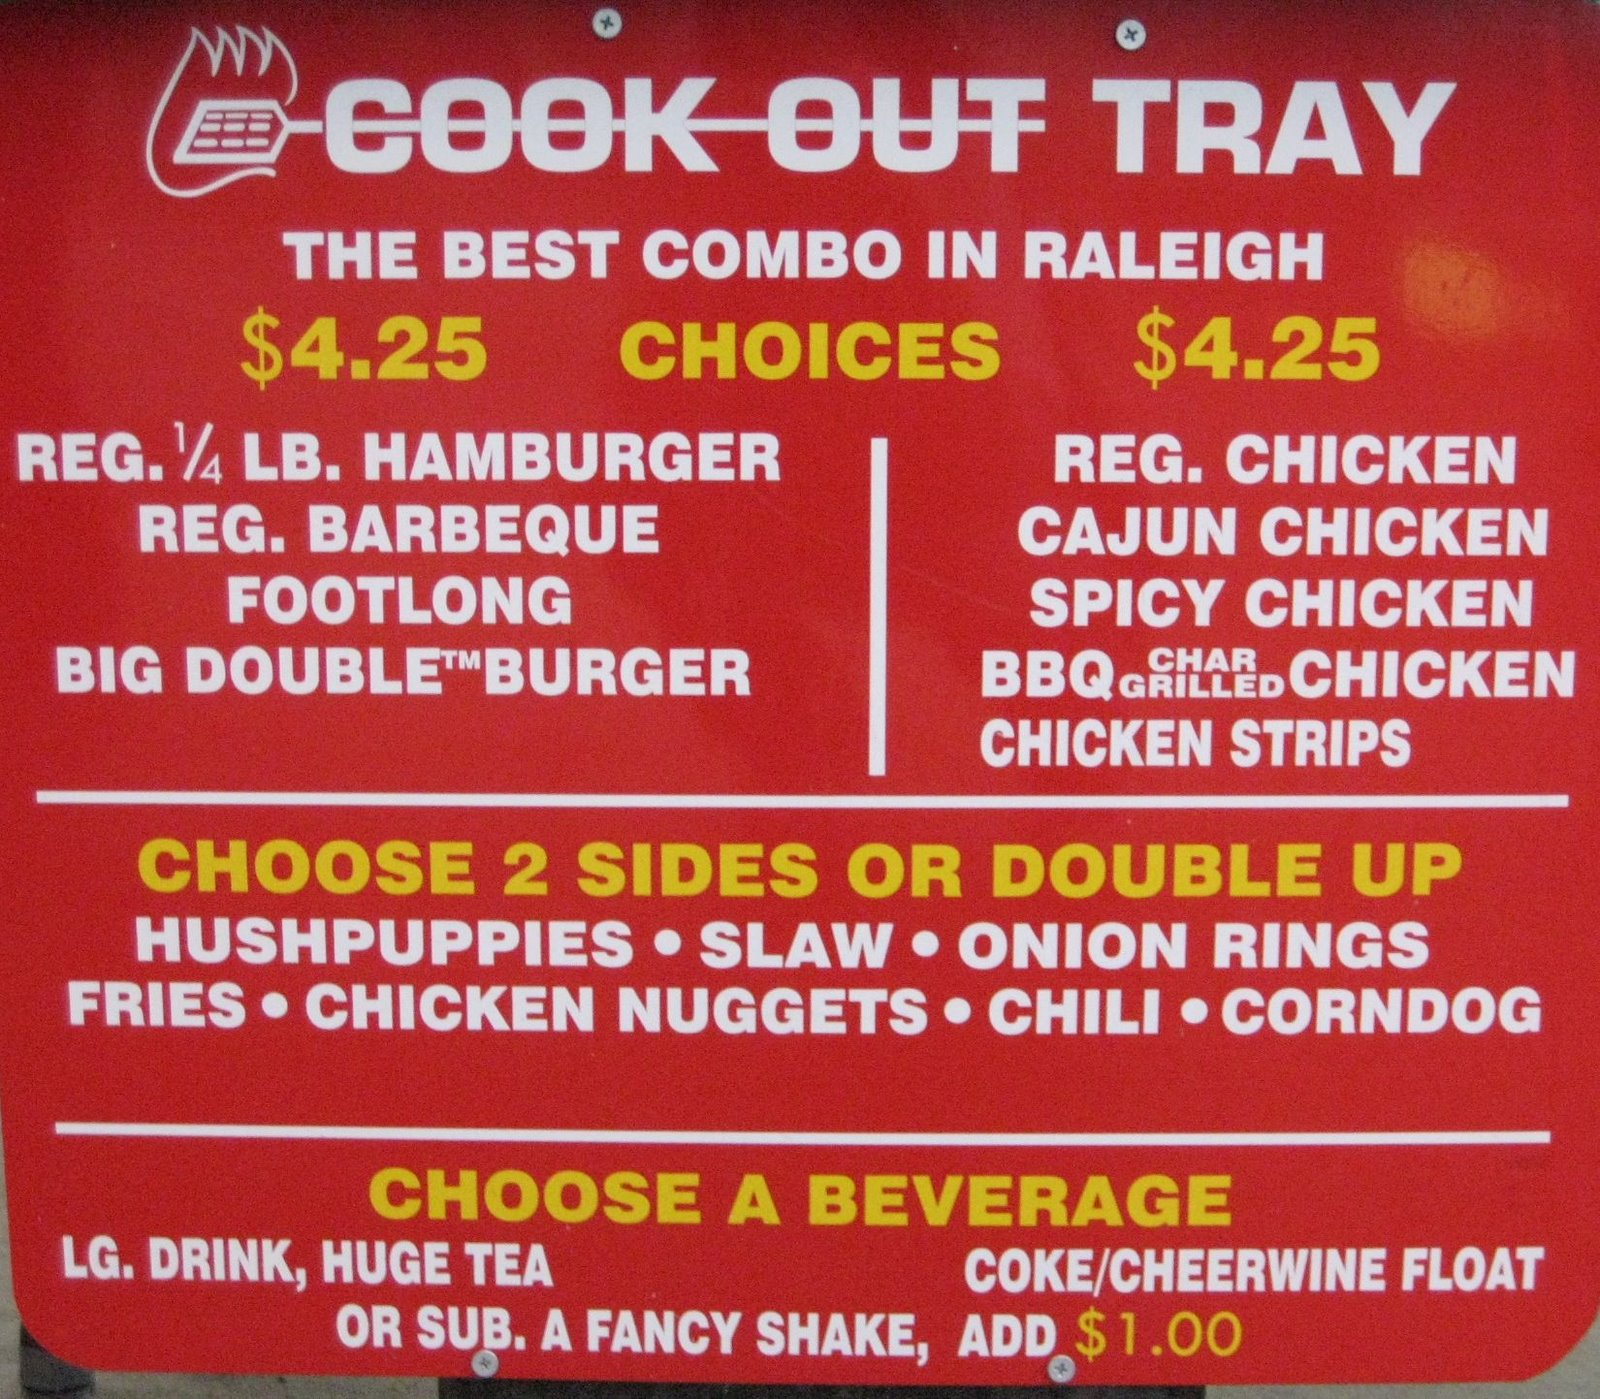 eatcookout | cook out restaurant menu, locations, nutritional